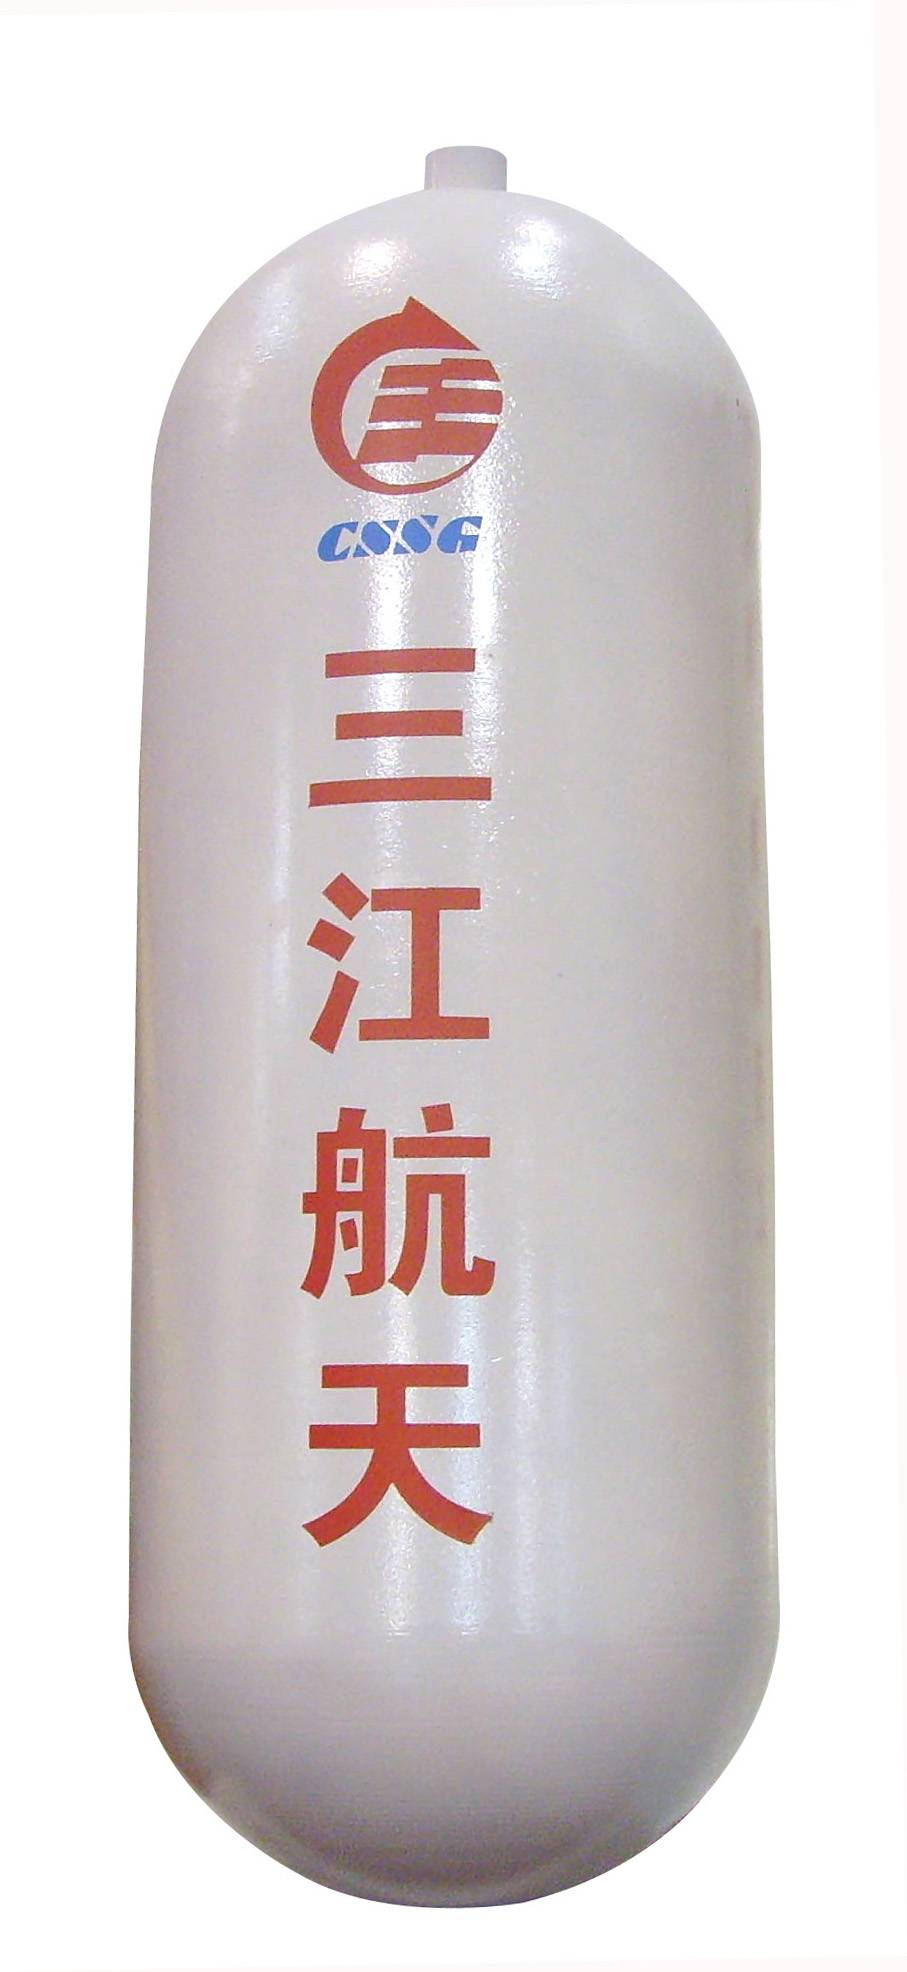 CNG-1 Steel Cylinders for Vehicles